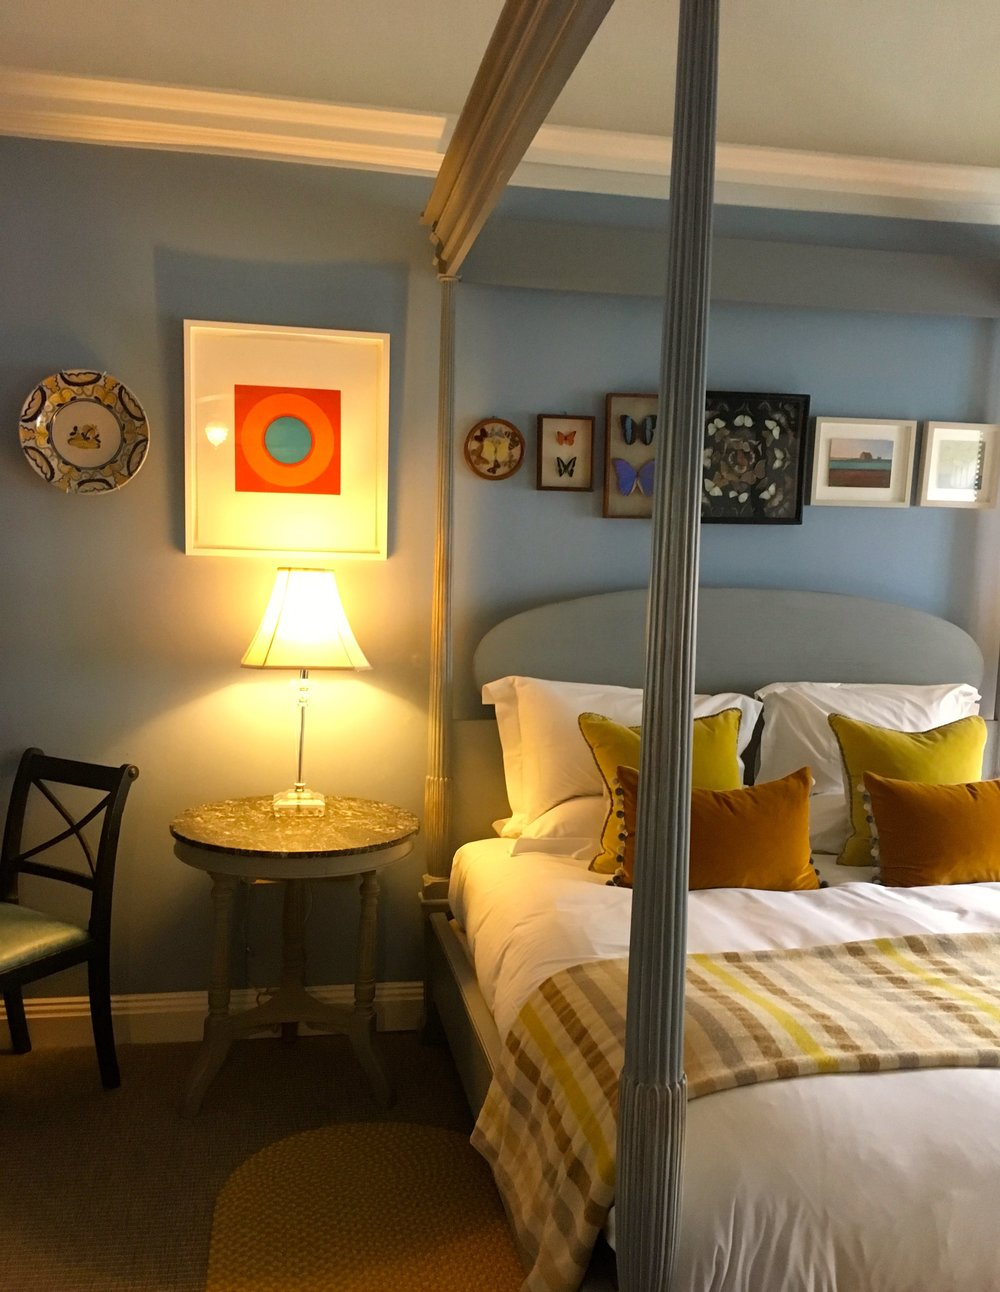 A four poster bed and homely decor